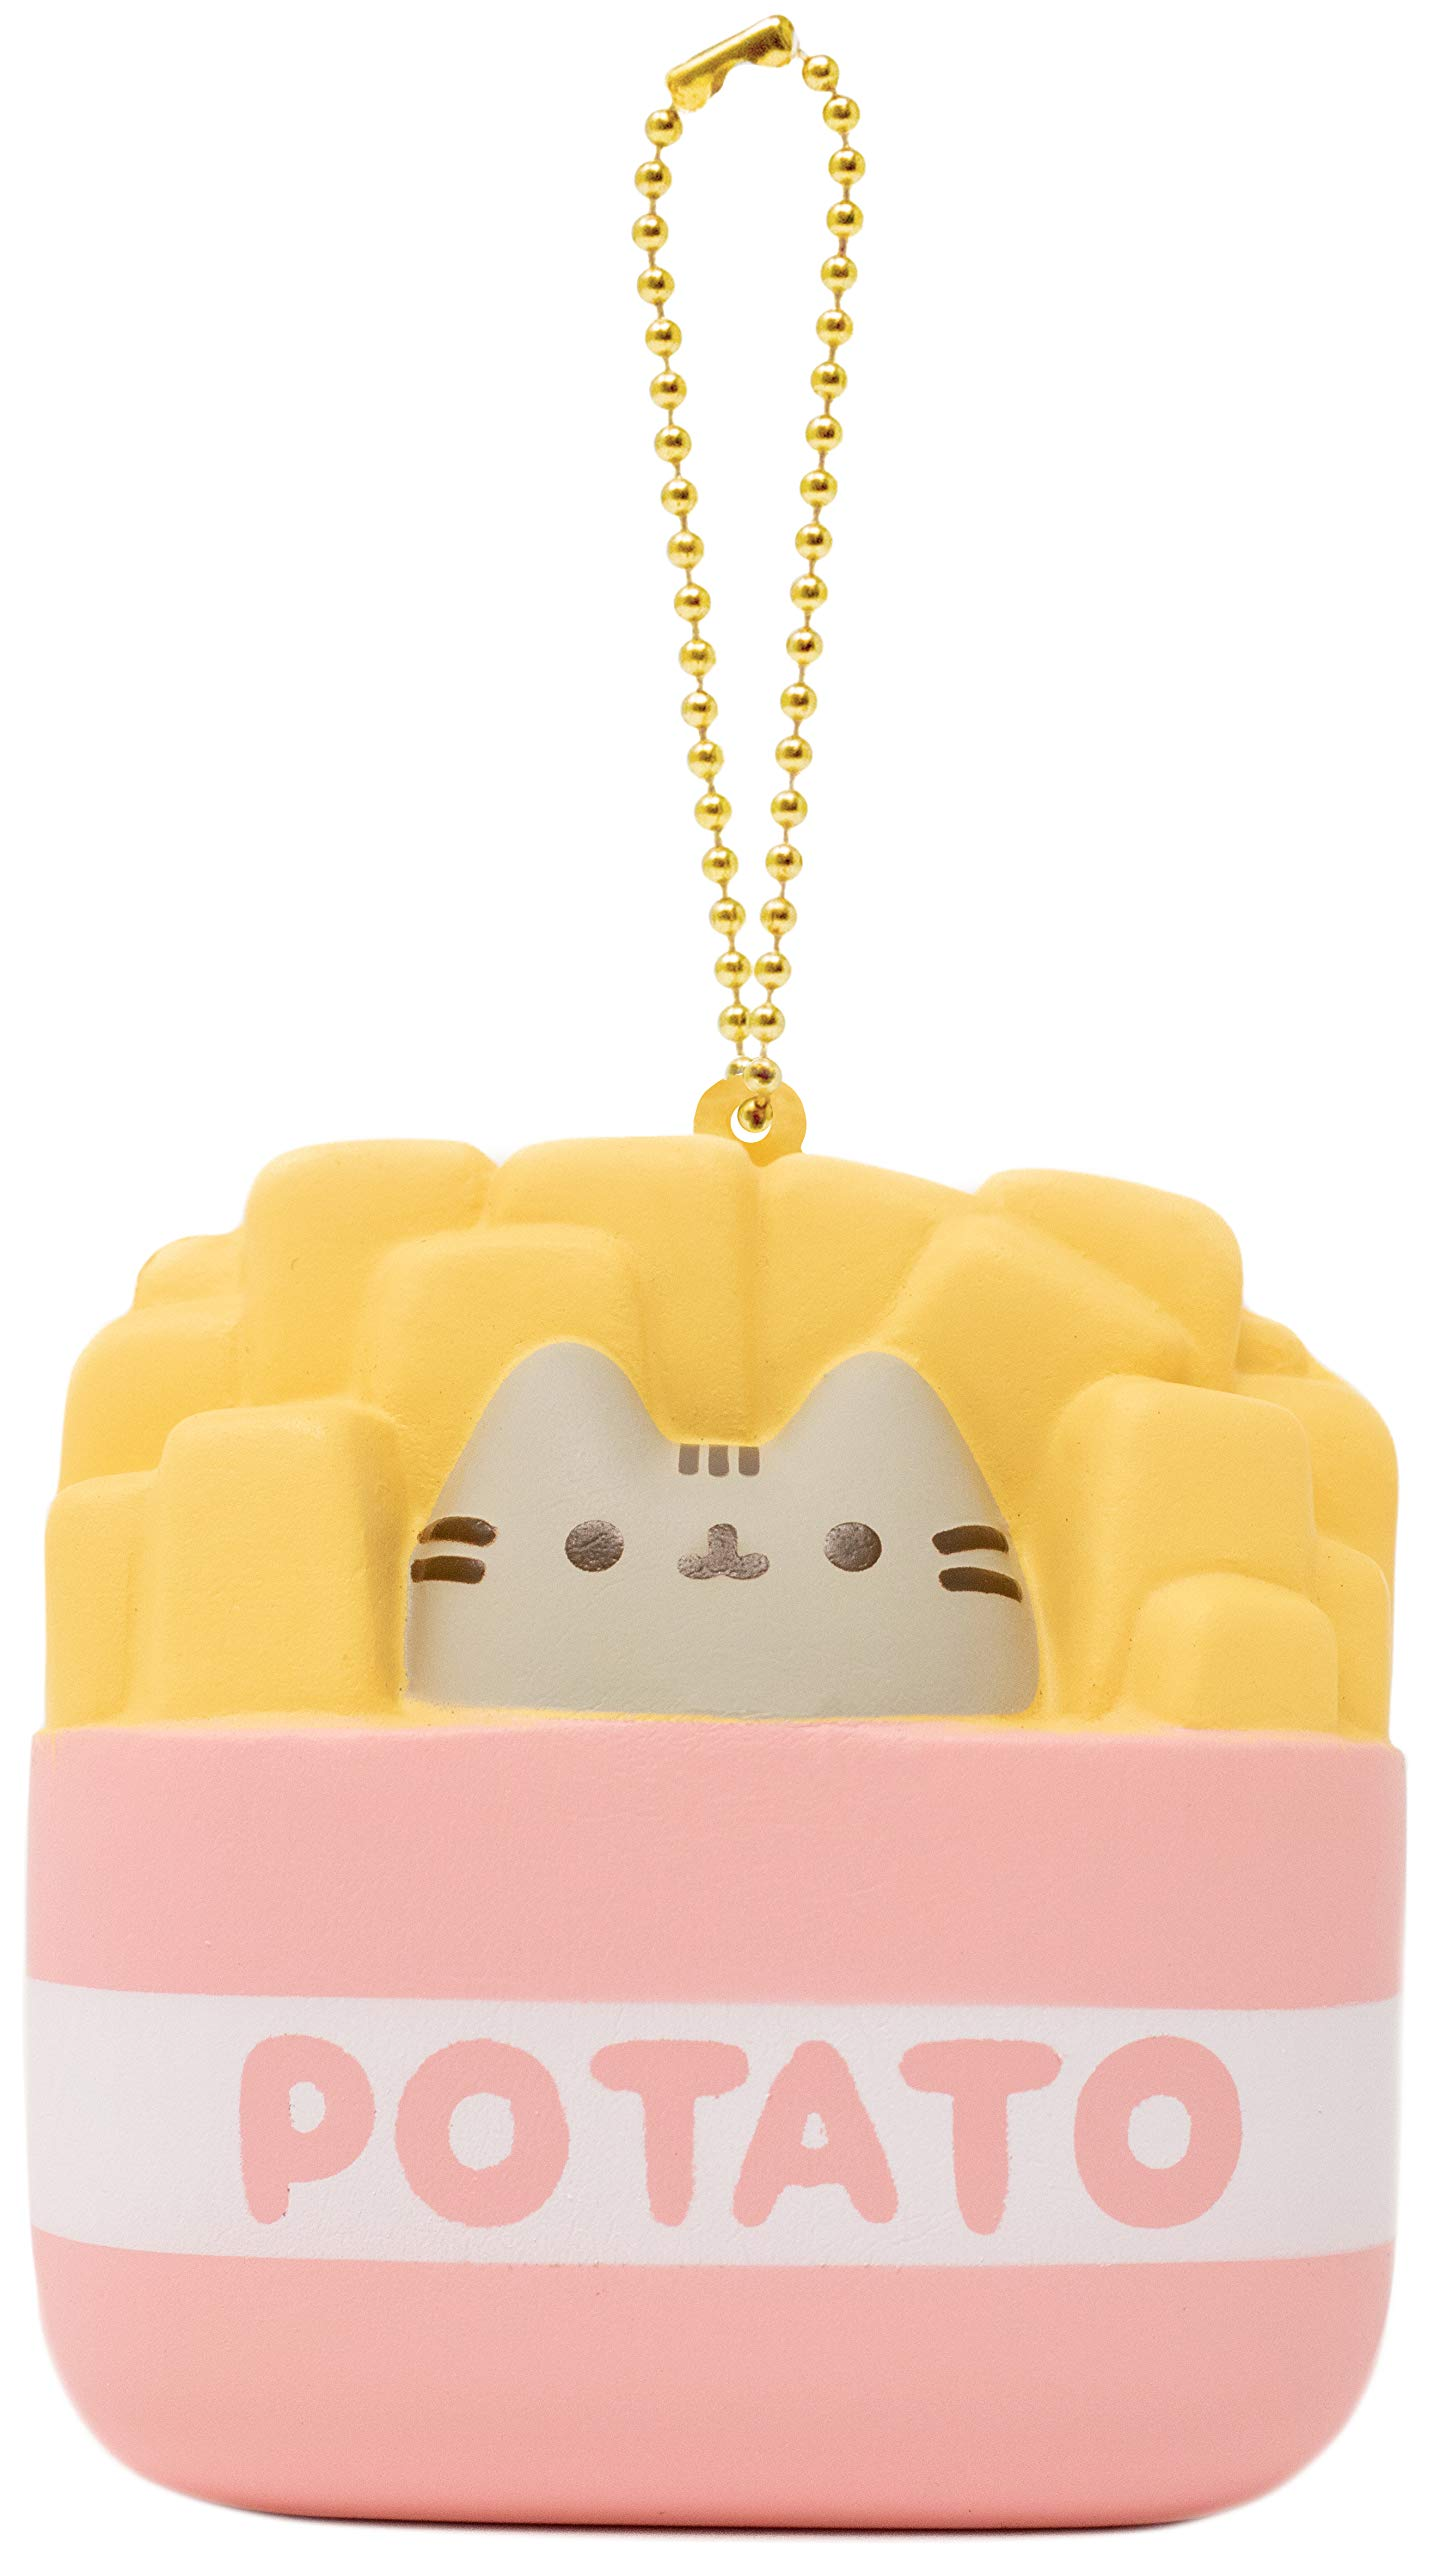 Hamee Pusheen Official Licensed Junk Food Slow Rising Squishy Toy [Square Series] (French Fries, 3 Inch) [Birthday Gift Box, Party Favors, Gift Basket, Stress Relief Toys for Kids, Adults]